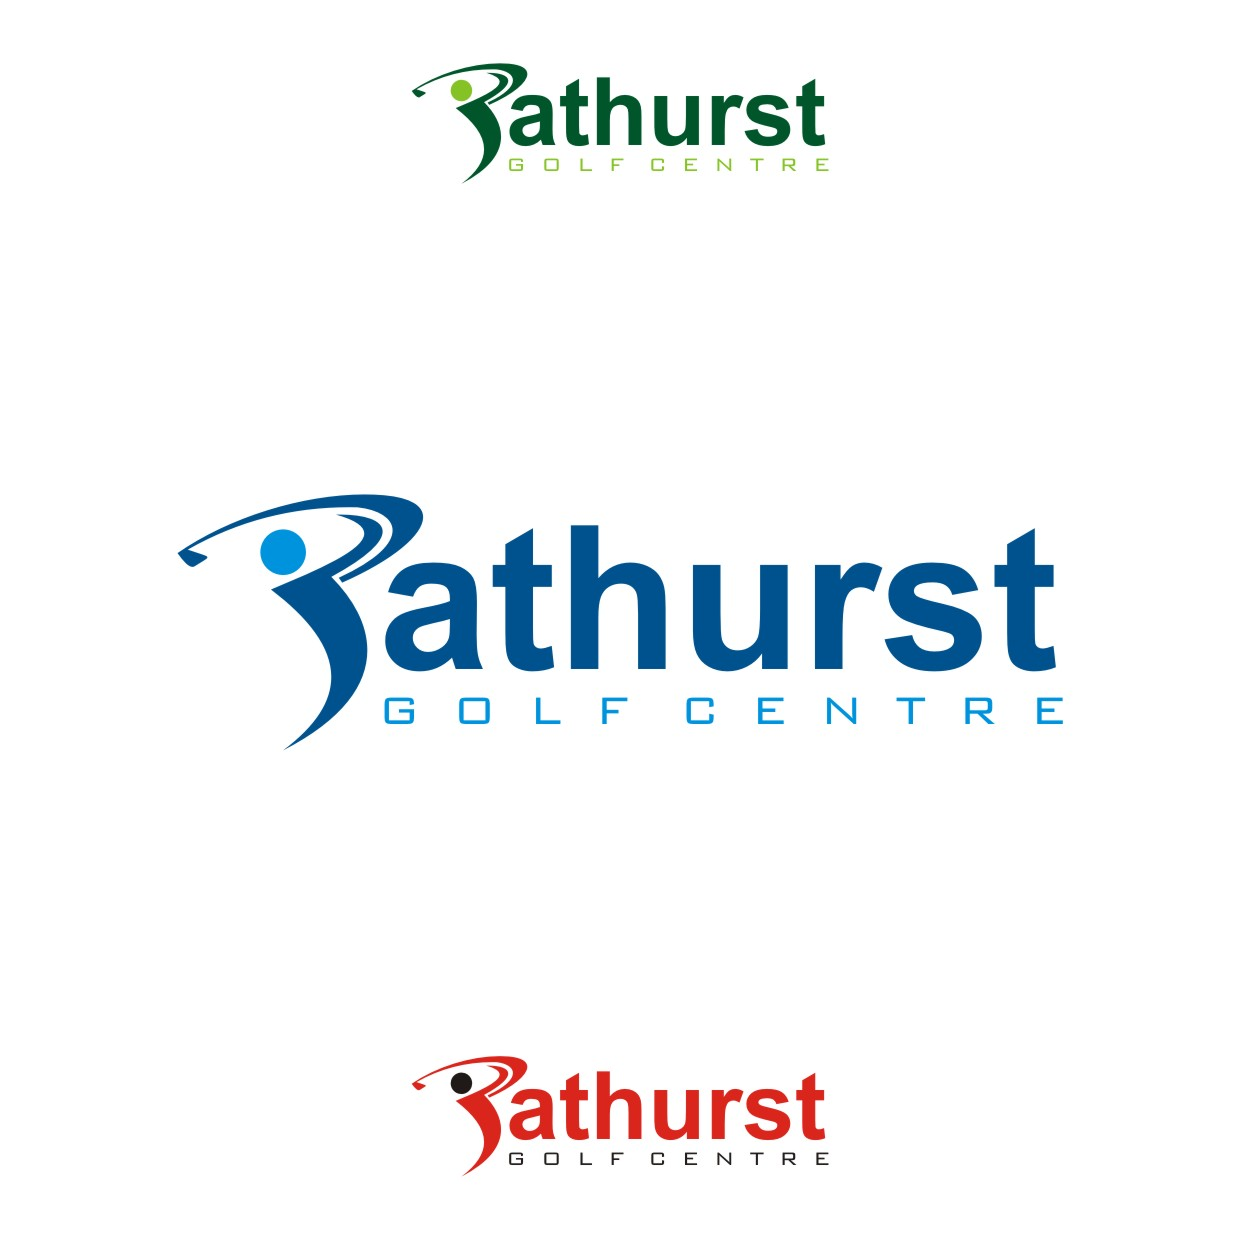 Logo Design by Spider Graphics - Entry No. 100 in the Logo Design Contest Inspiring Logo Design for Bathurst Golf Centre.